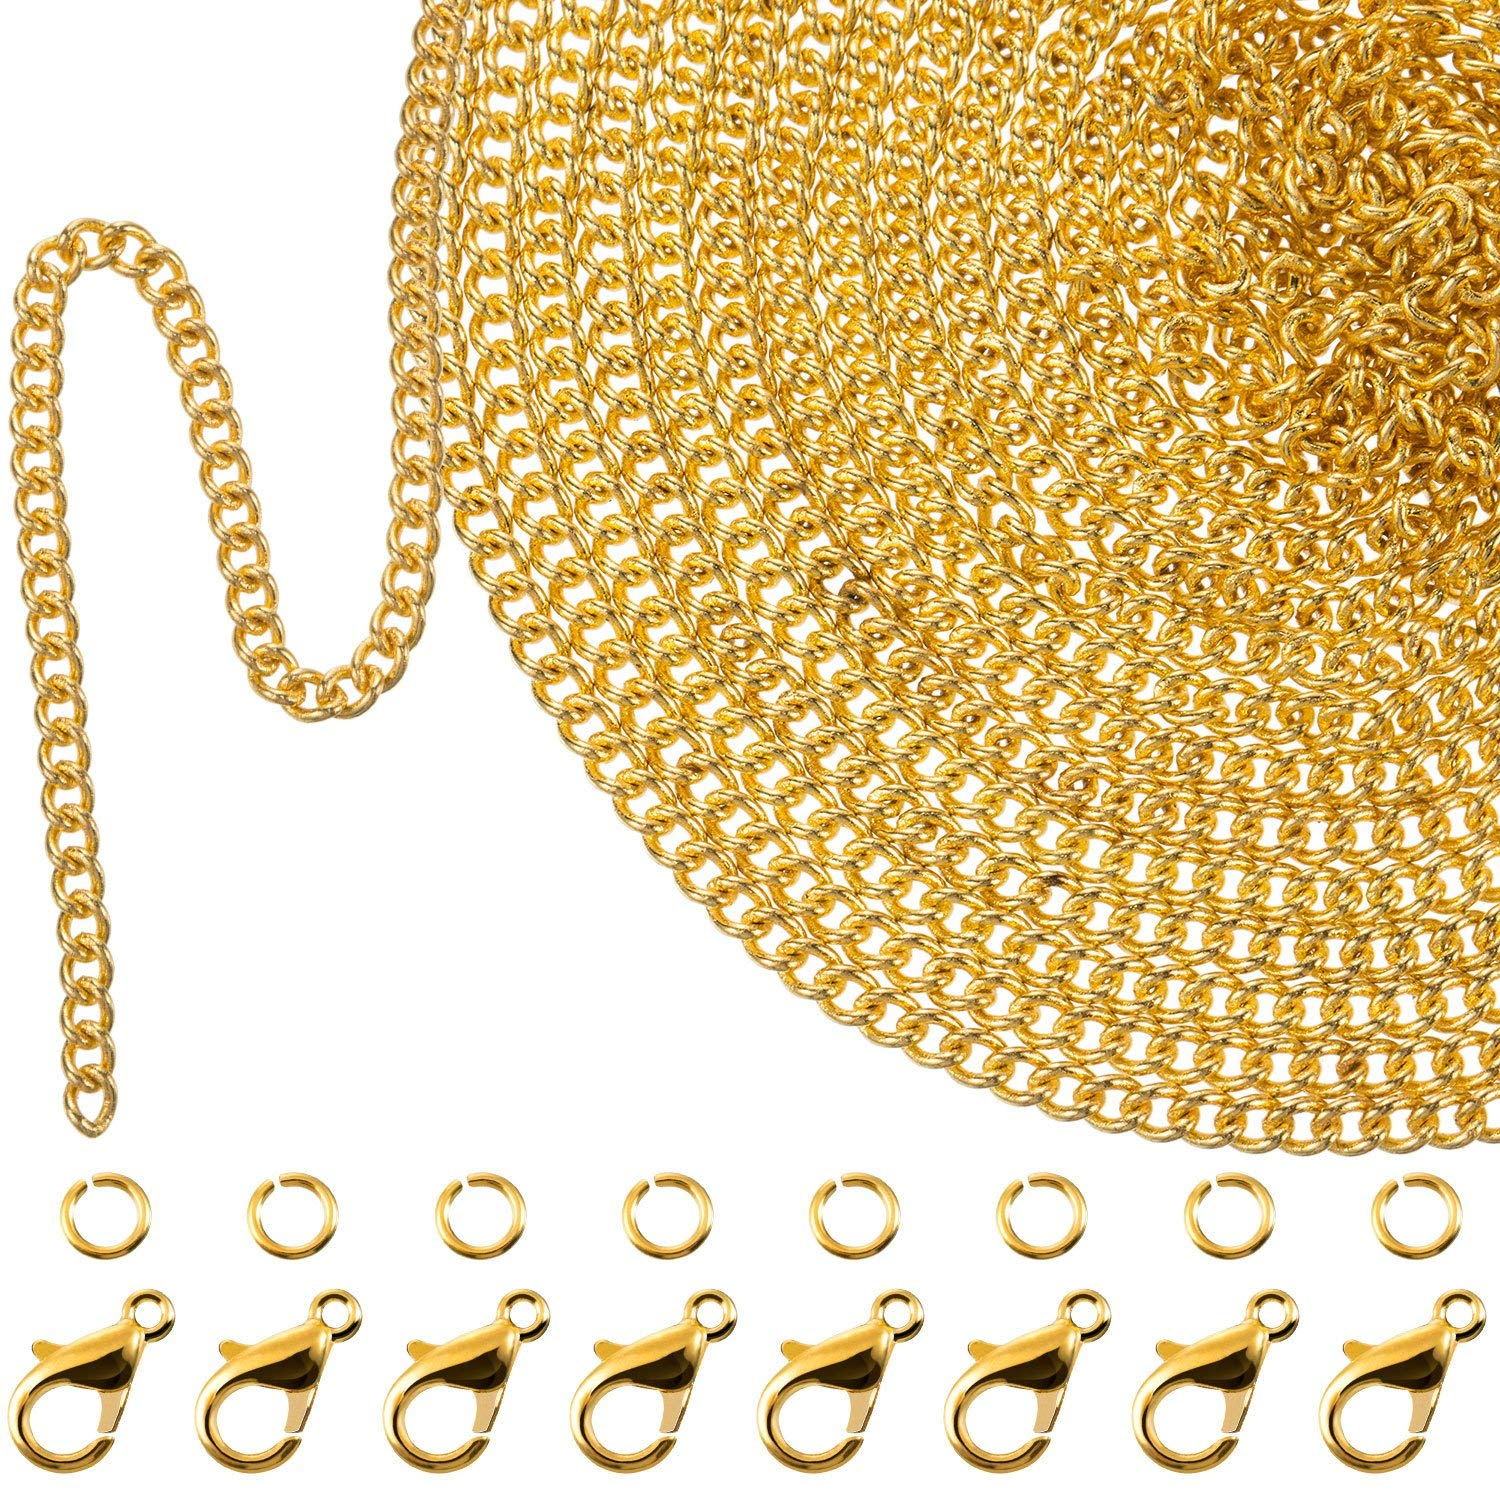 Gold Color 39.4 Feet 2 mm Link Chain Necklace Jewelry Plier with 30 Pieces Lobster Clasps and 100 Pieces Jump Rings for Jewelry Accessories DIY